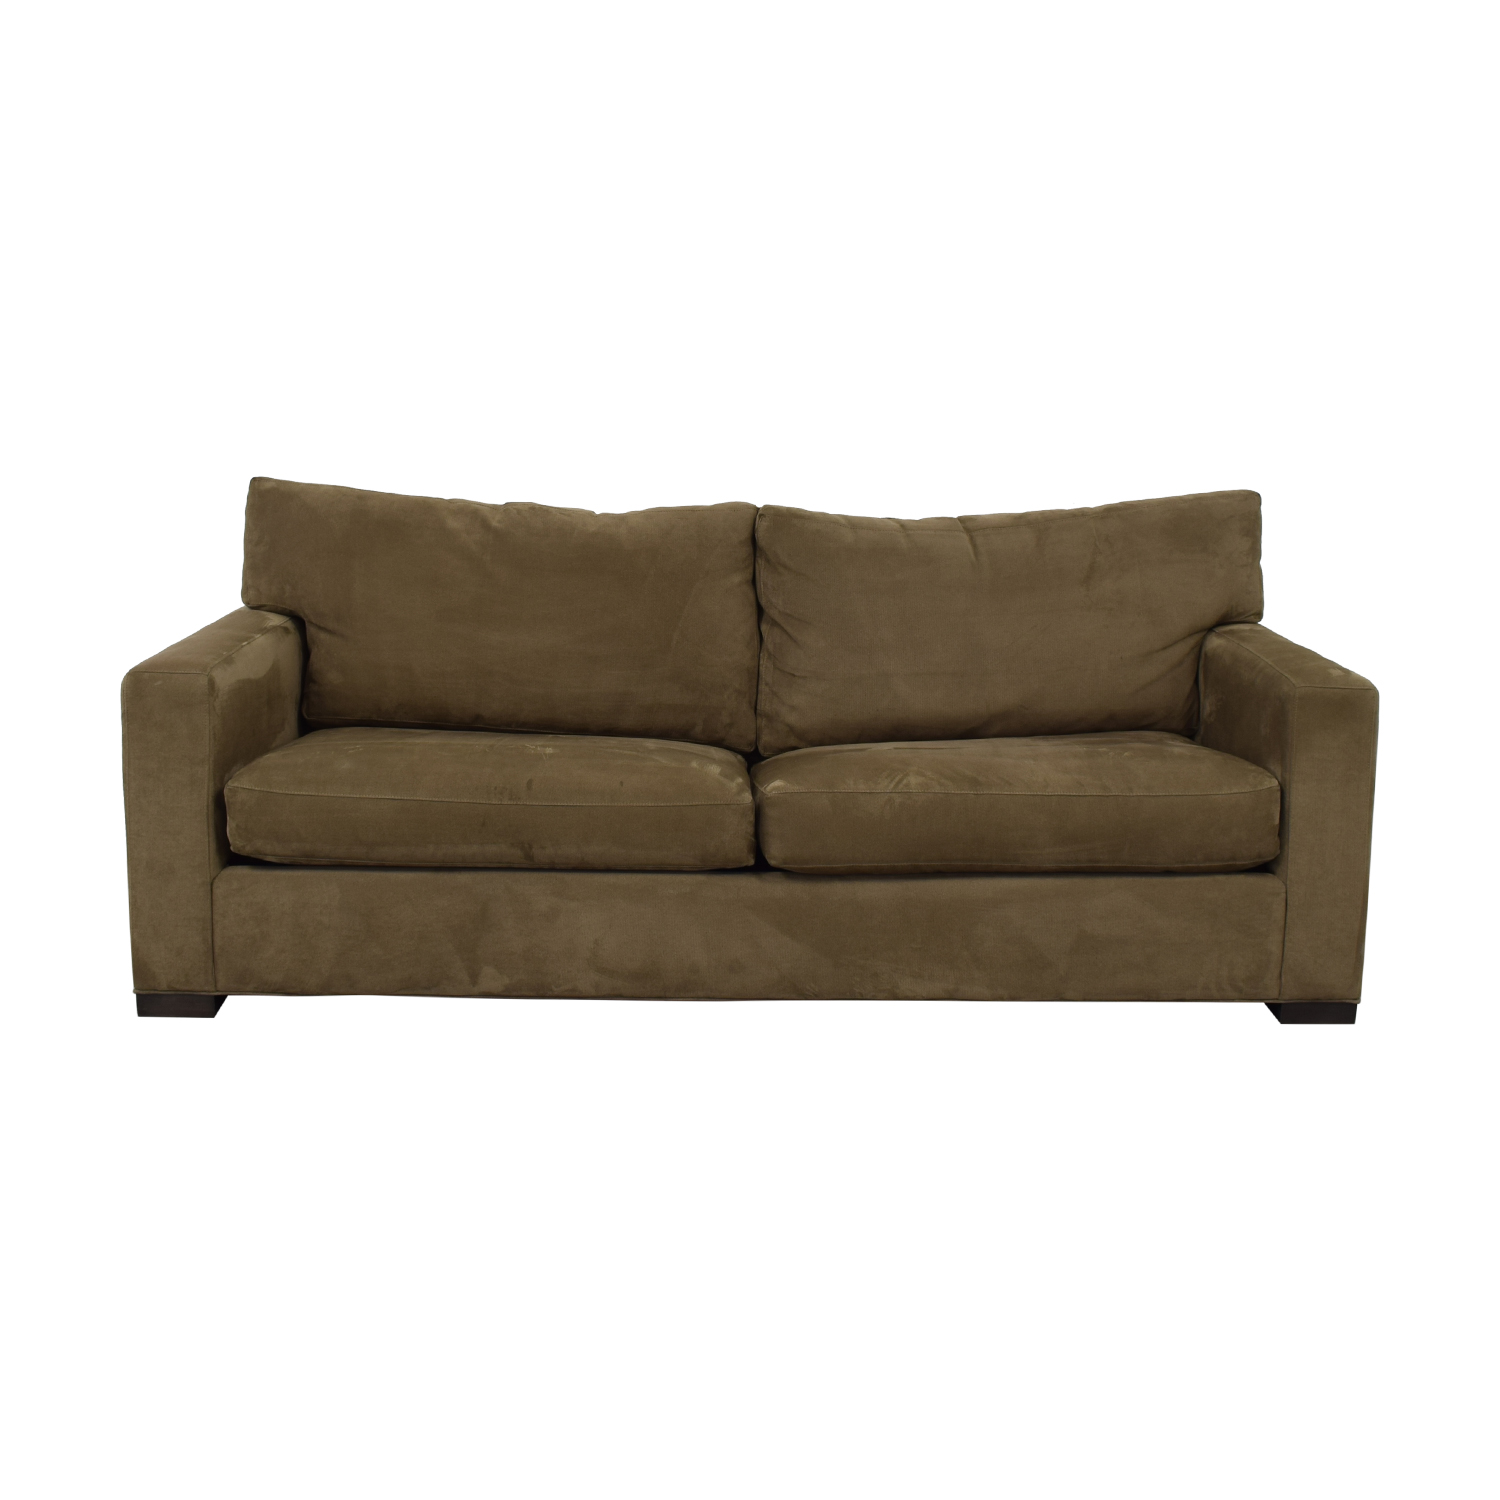 buy Crate & Barrel Axis II Queen Sleeper Sofa Crate & Barrel Sofas